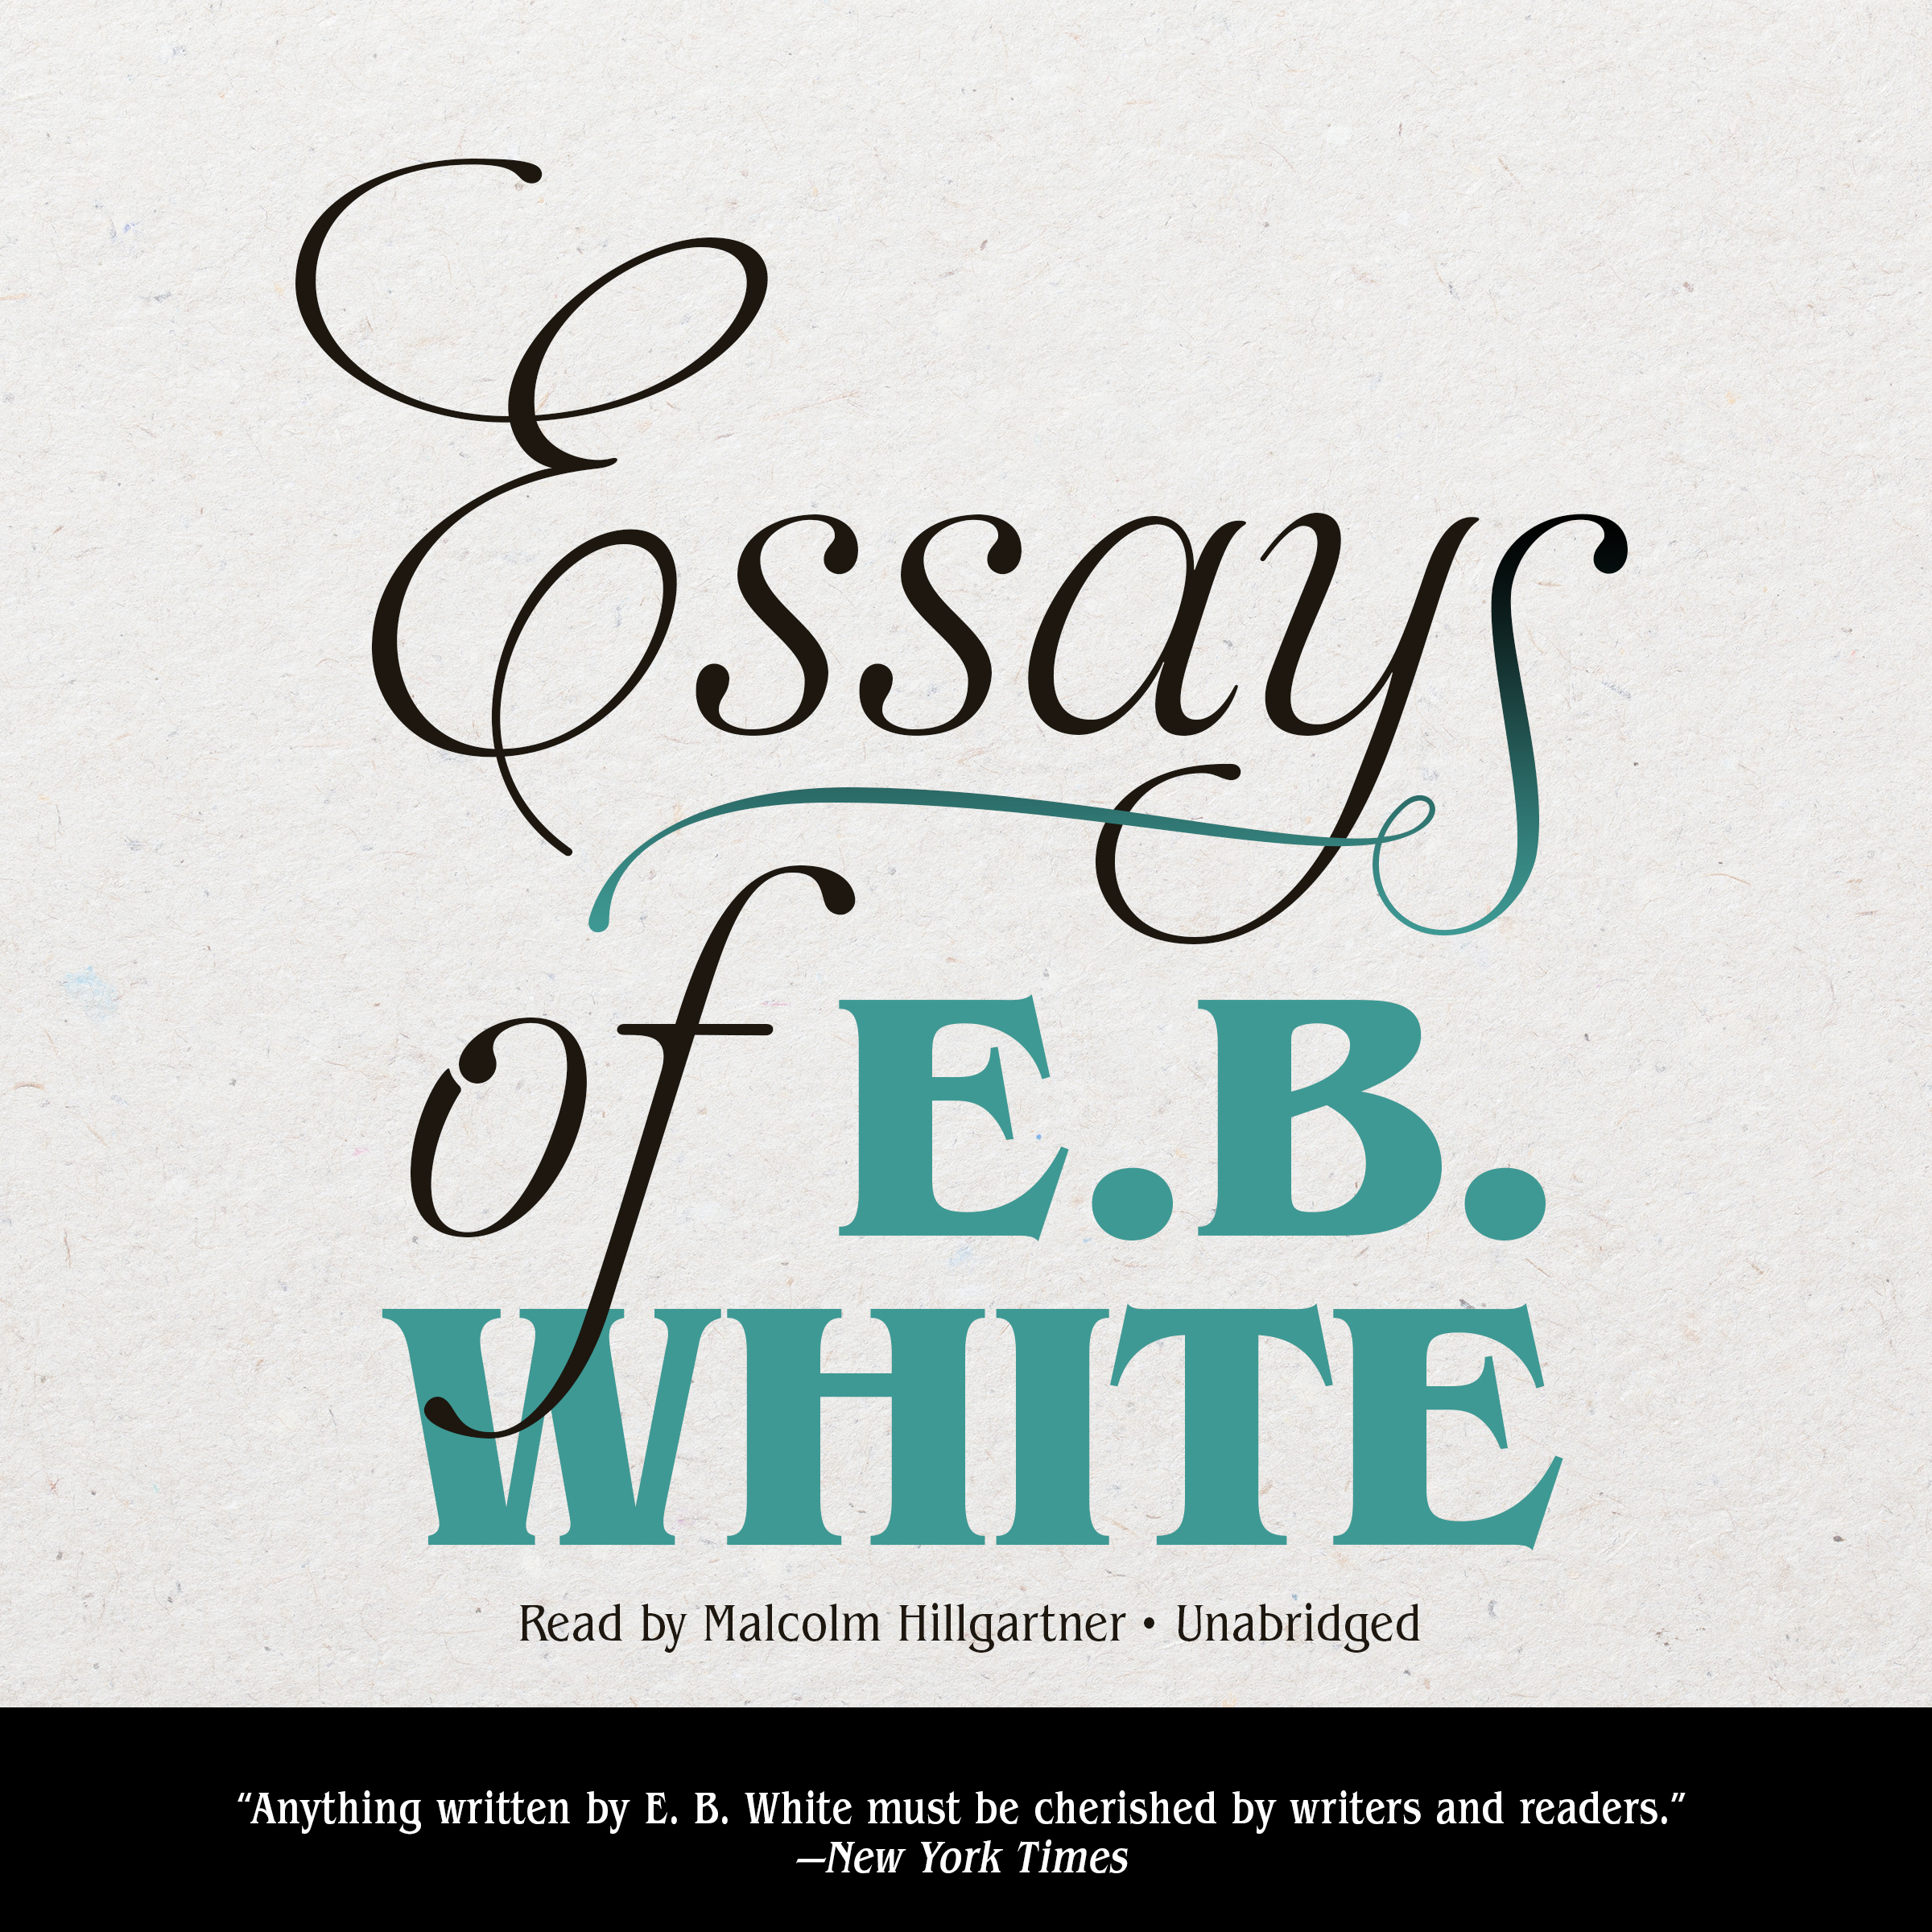 eb white essay essays in the art of writing online library ebooks ...